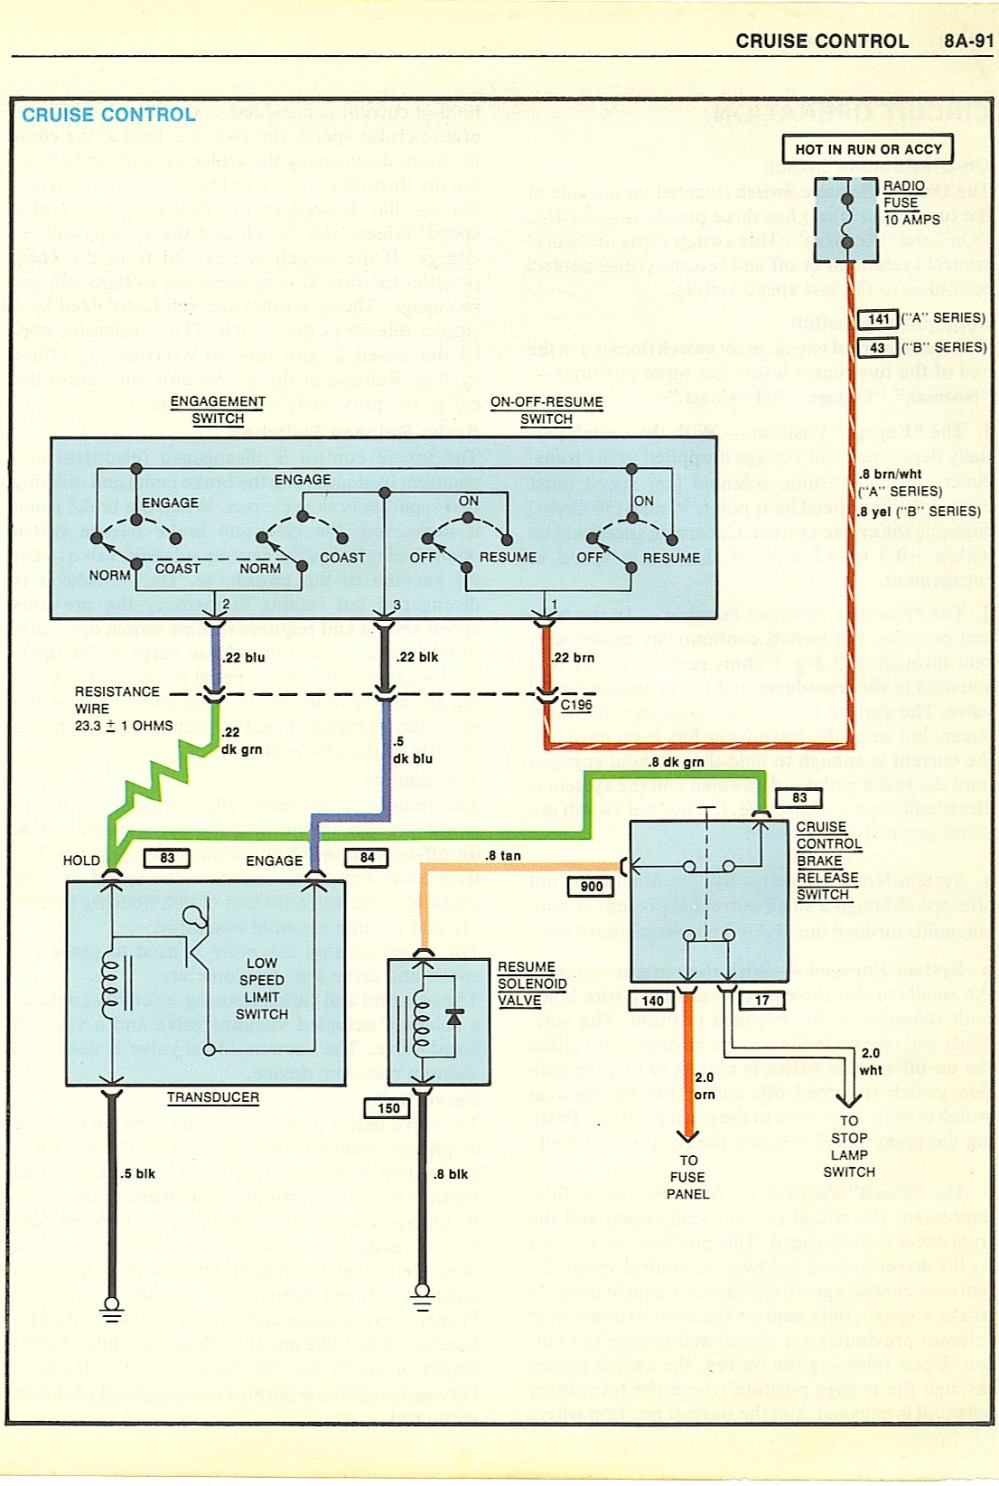 medium resolution of 1981 kenworth wiring diagram simple wiring diagram kenworth truck wiring diagrams kenworth wiper wiring diagrams